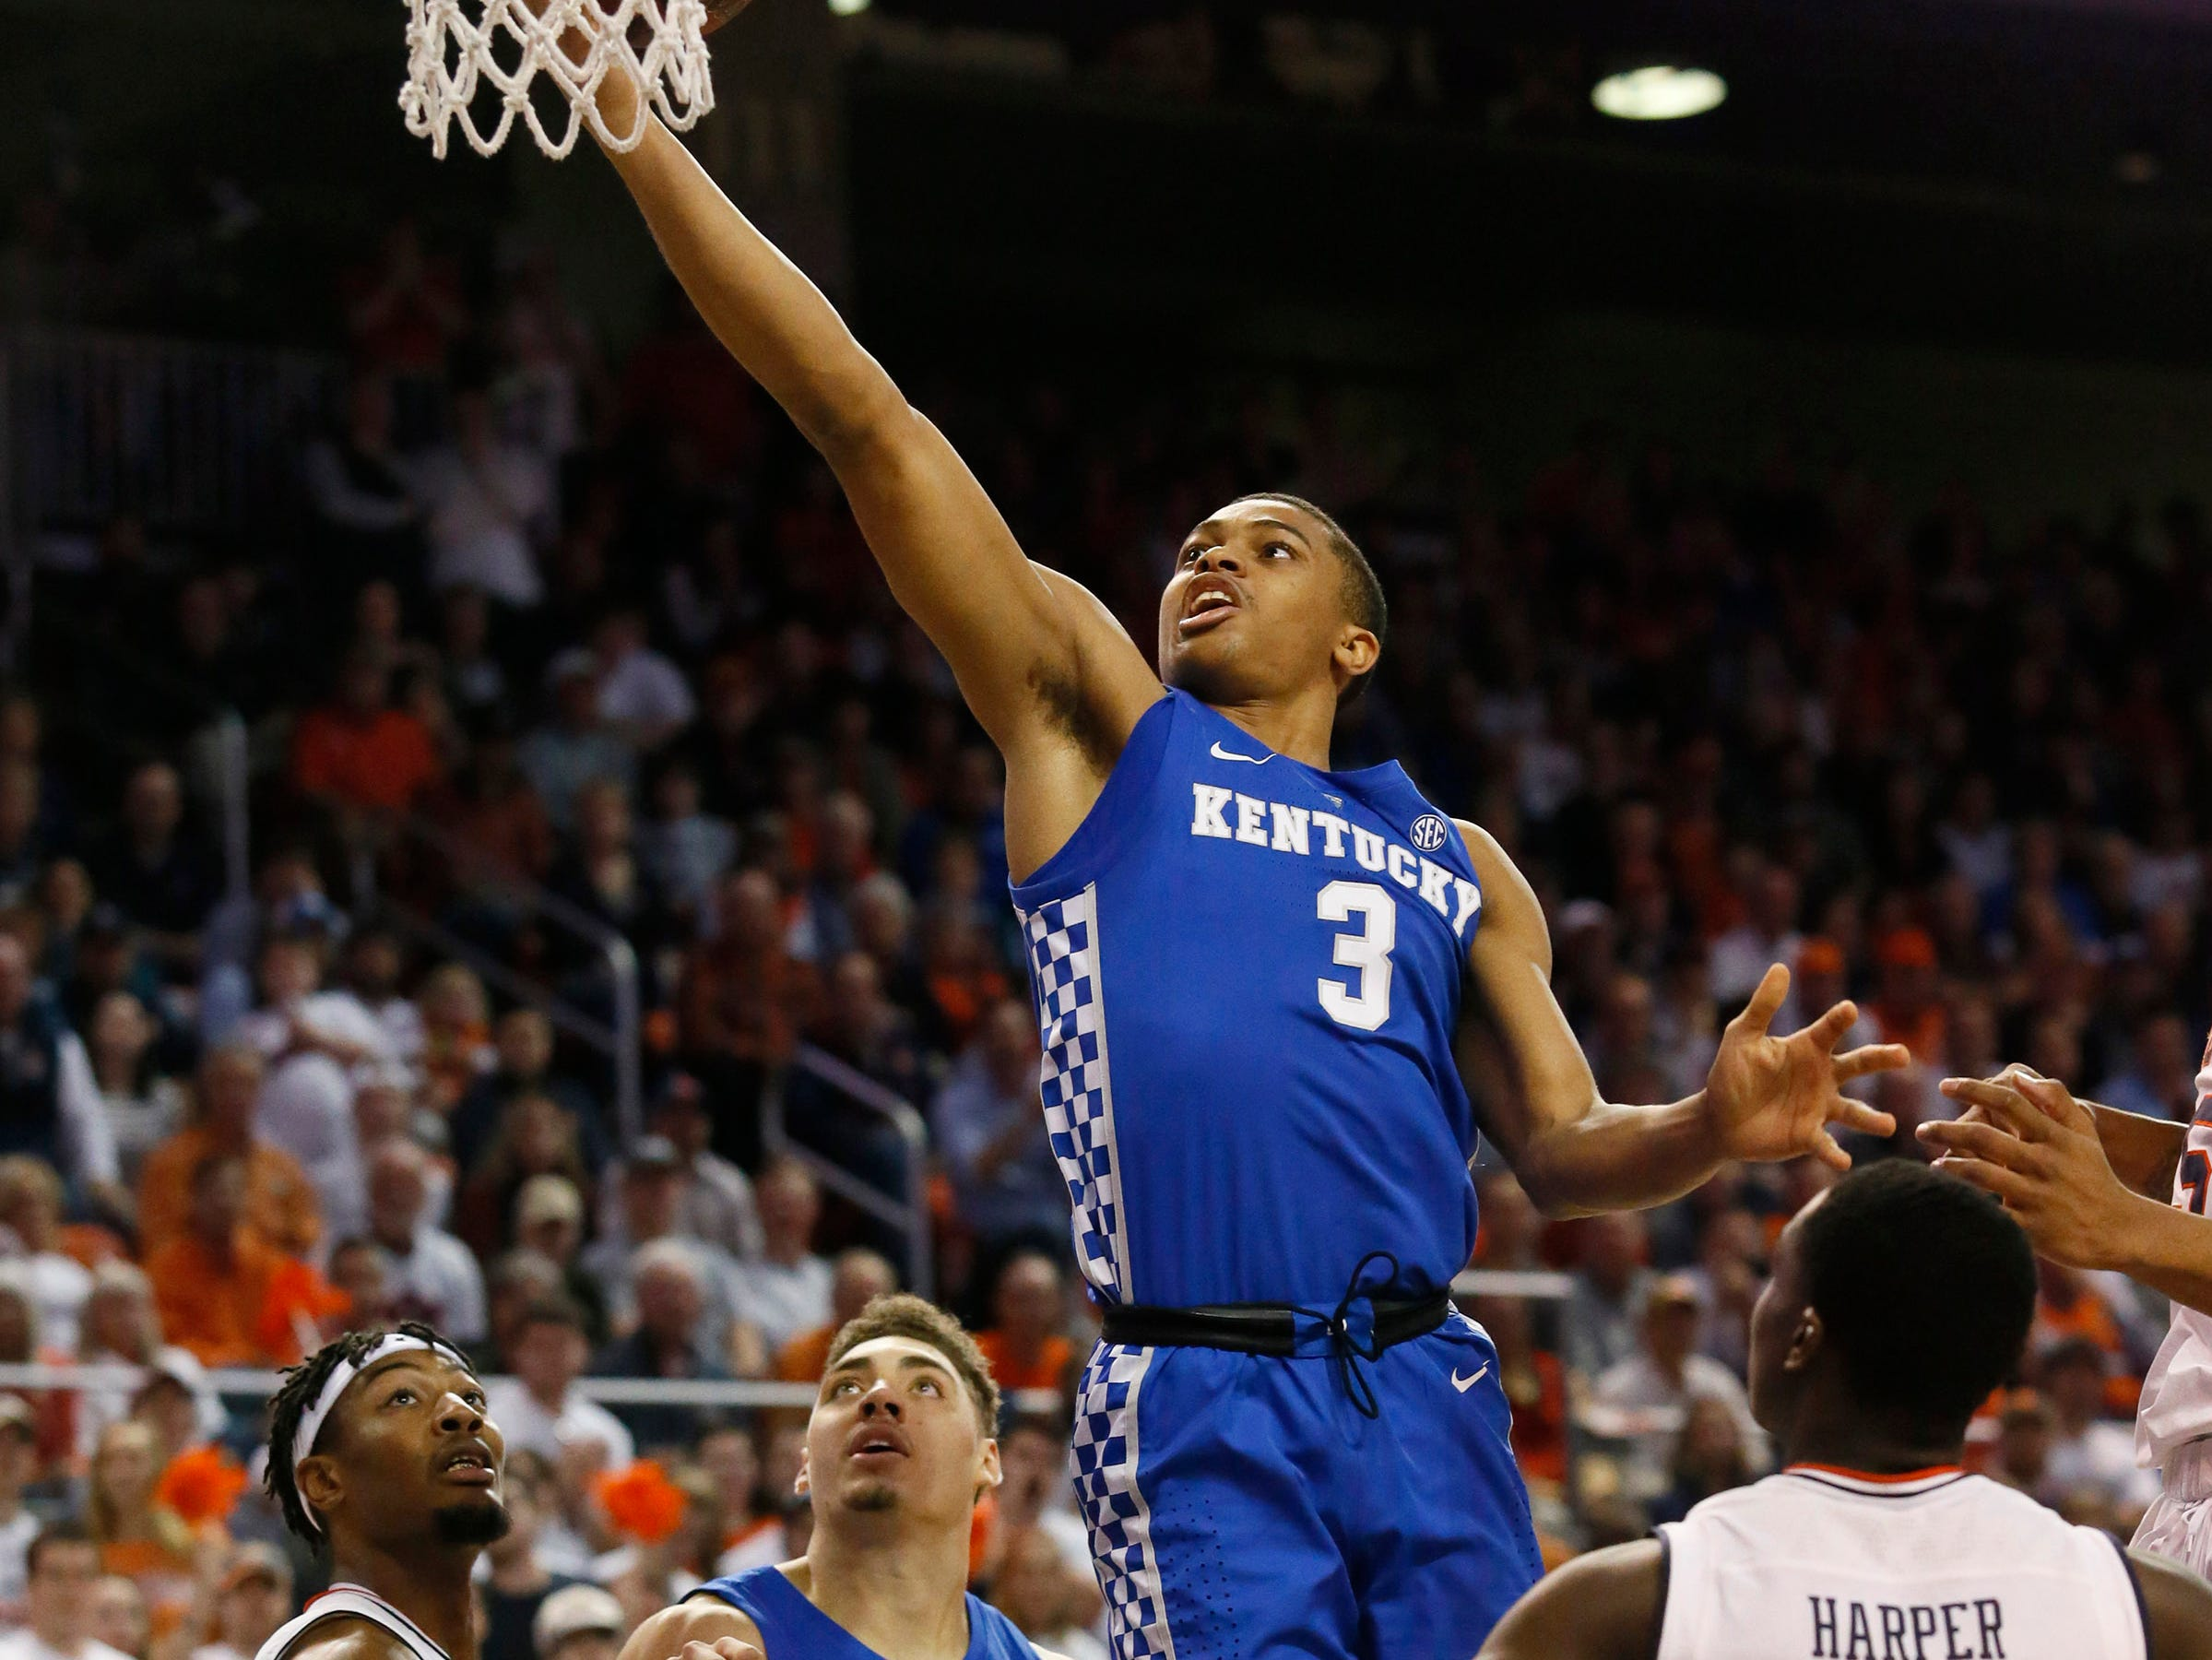 Jan 19, 2019; Auburn, AL, USA; Kentucky Wildcats guard Keldon Johnson (3) takes a shot against the Auburn Tigers during the first half at Auburn Arena. Mandatory Credit: John Reed-USA TODAY Sports